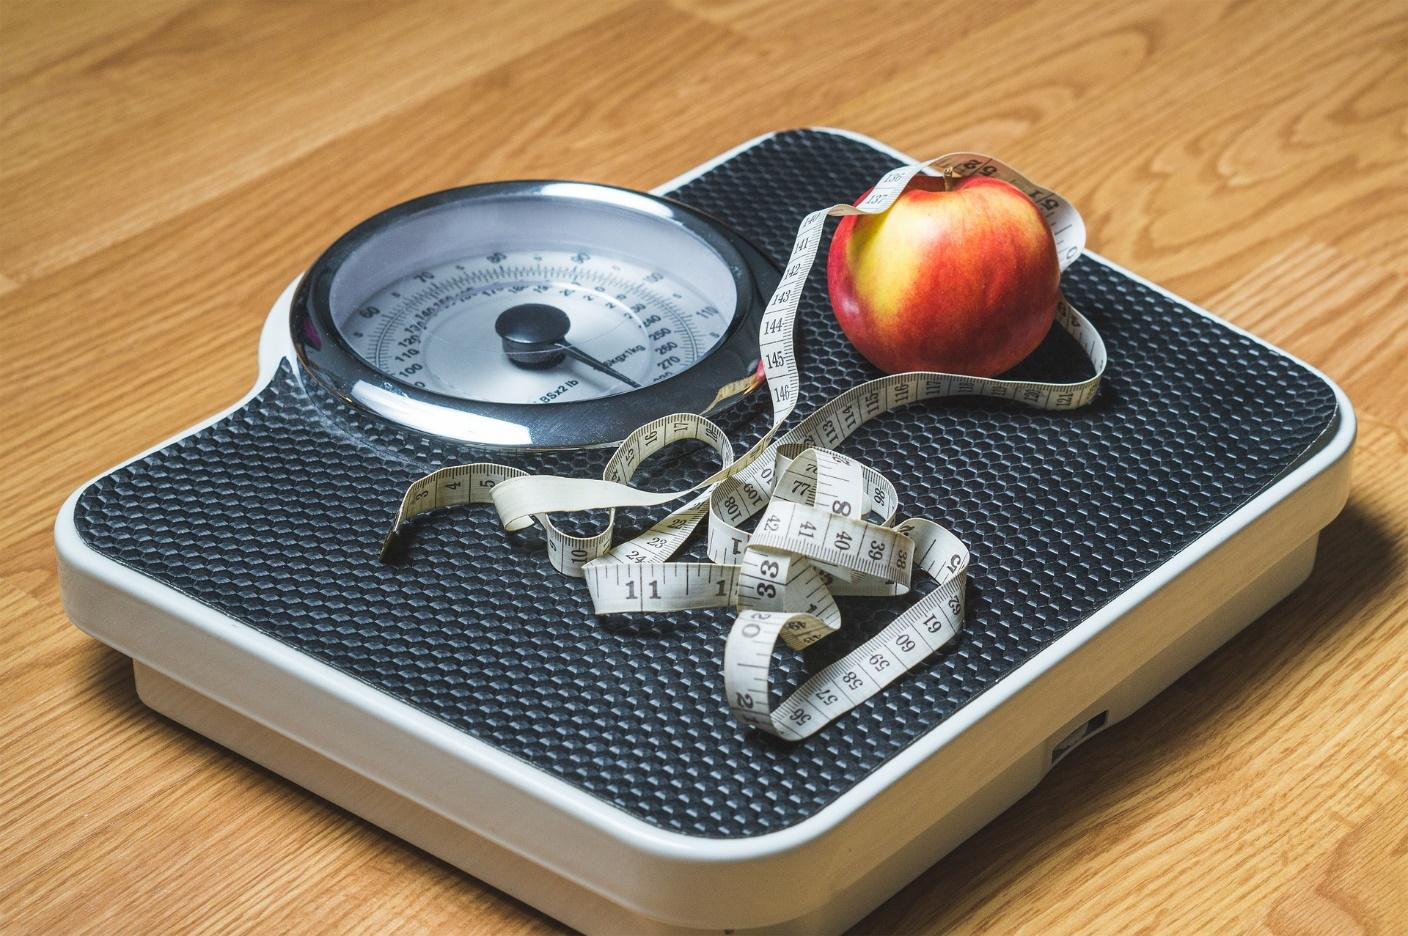 8 Must-have Items for a Successful Weight Loss Routine - Weighing scale